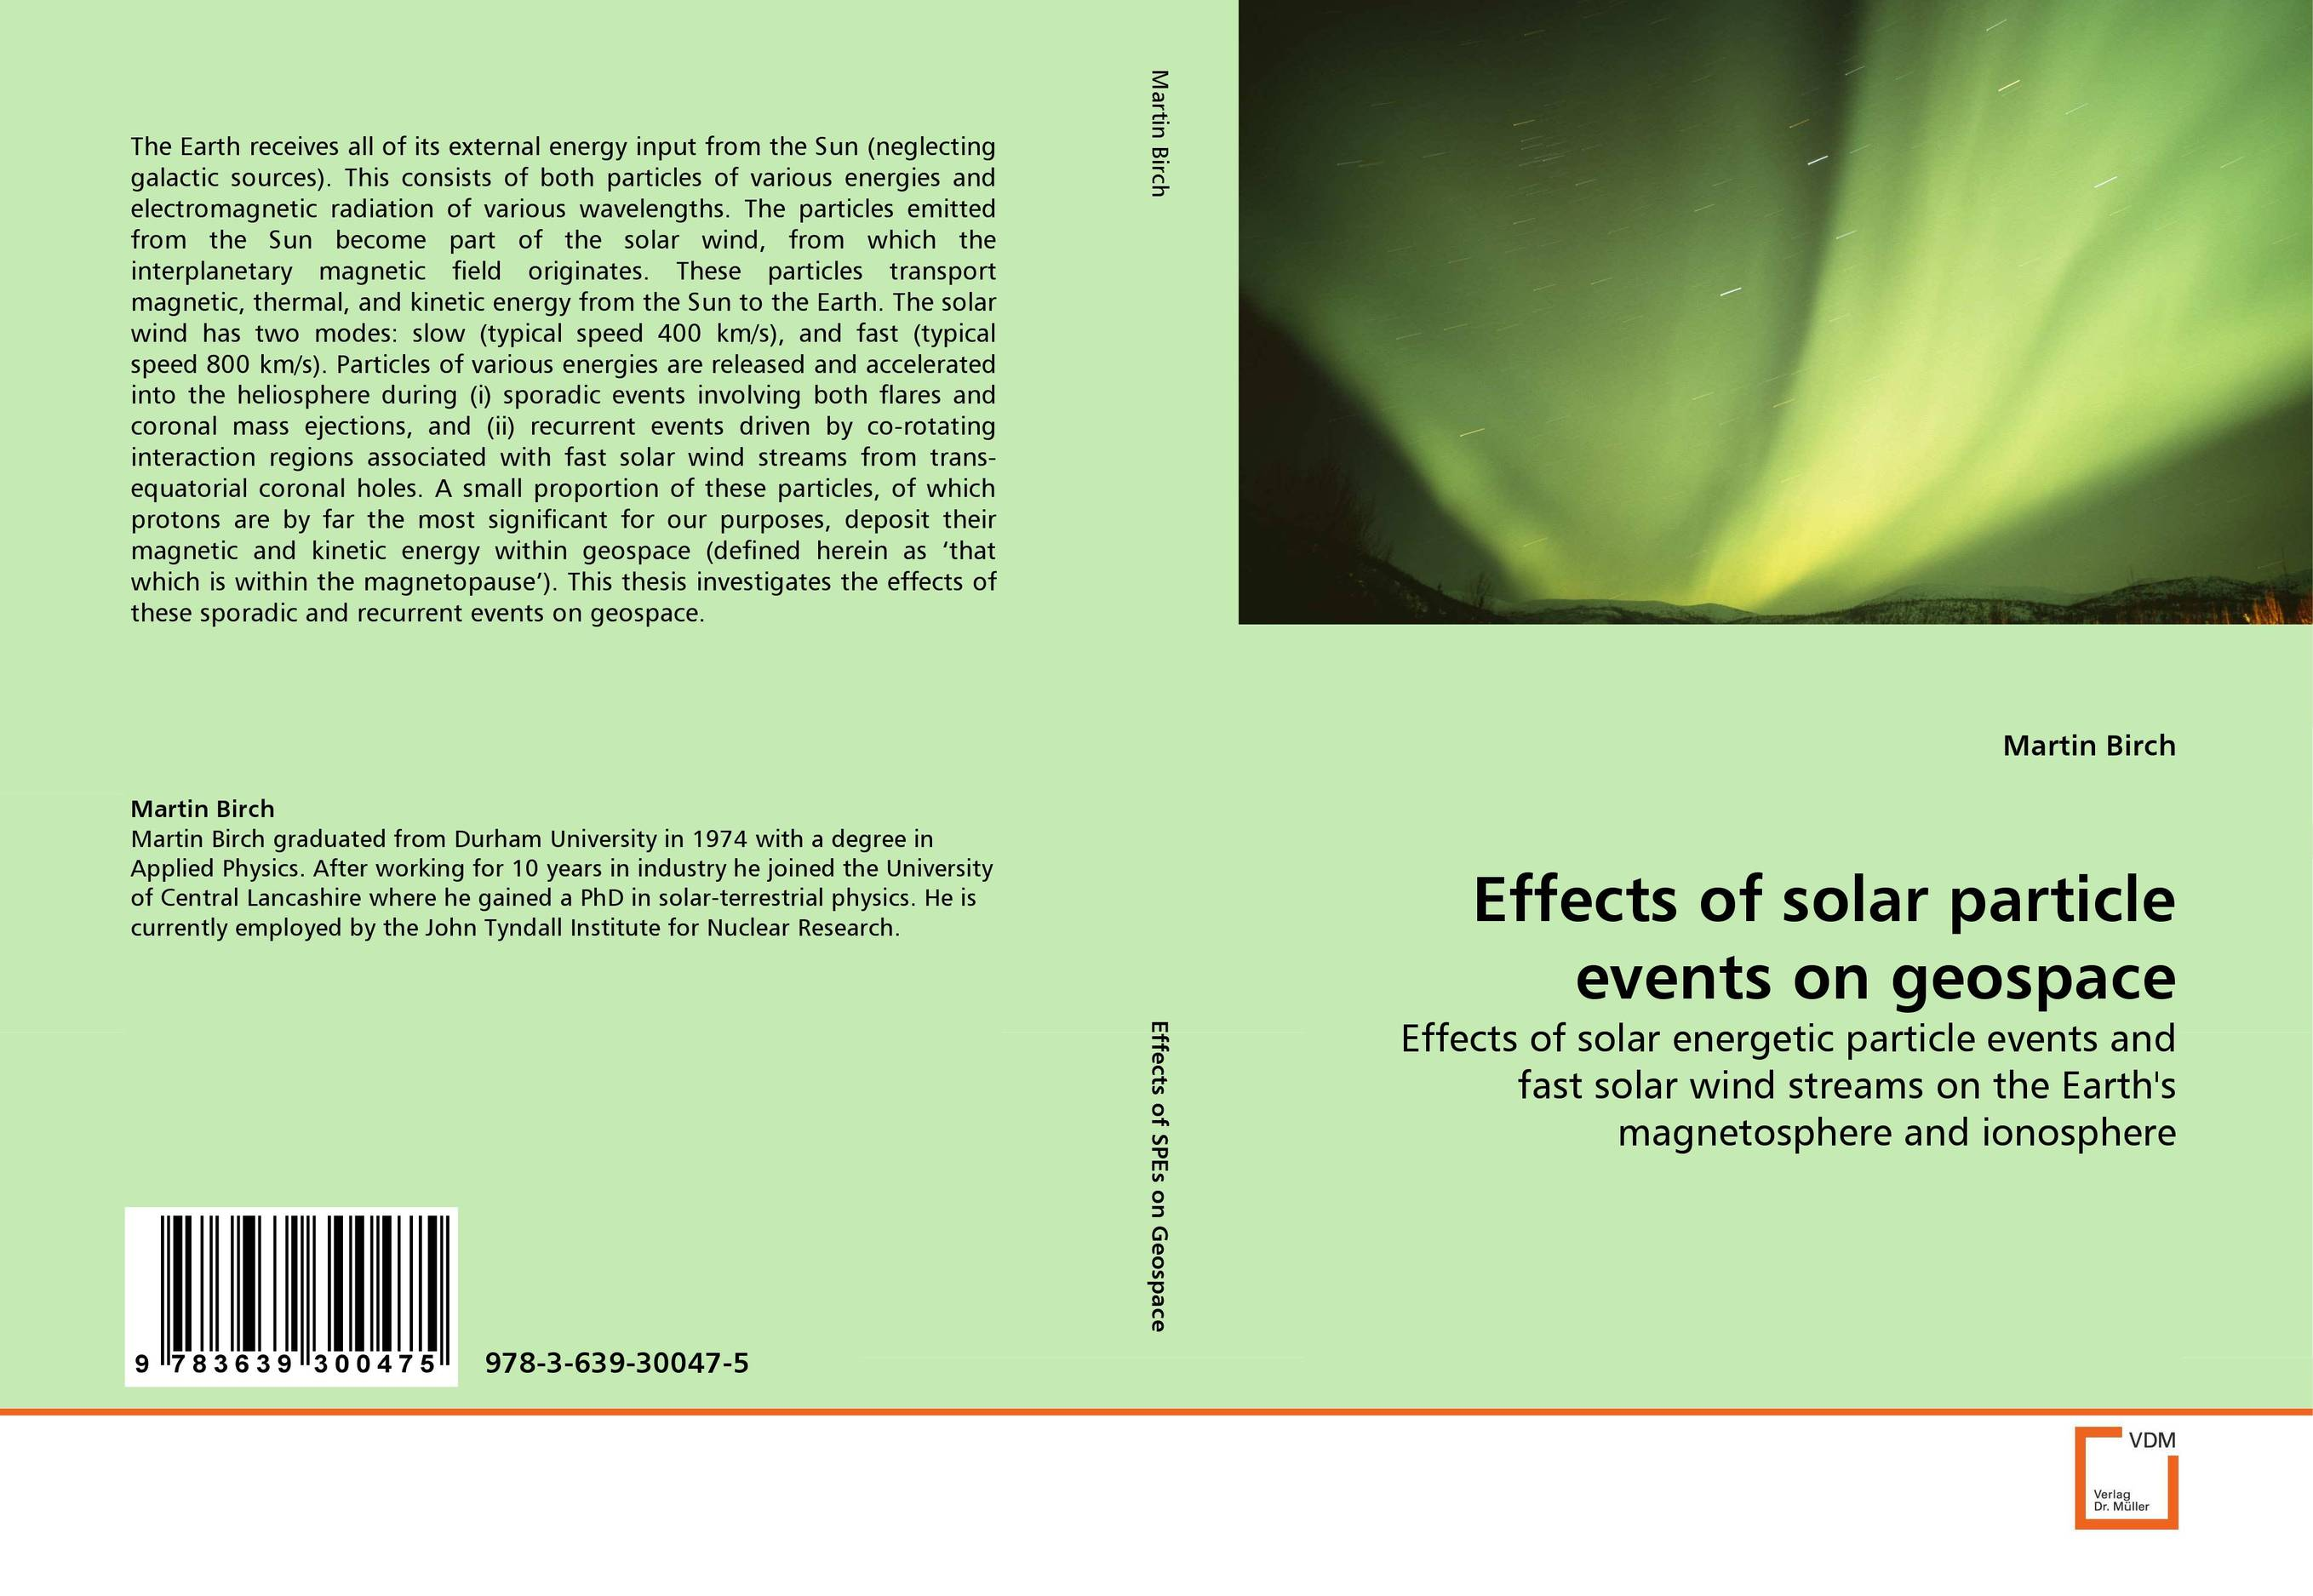 Effects of solar particle events on geospace wind effects on typical tall structures